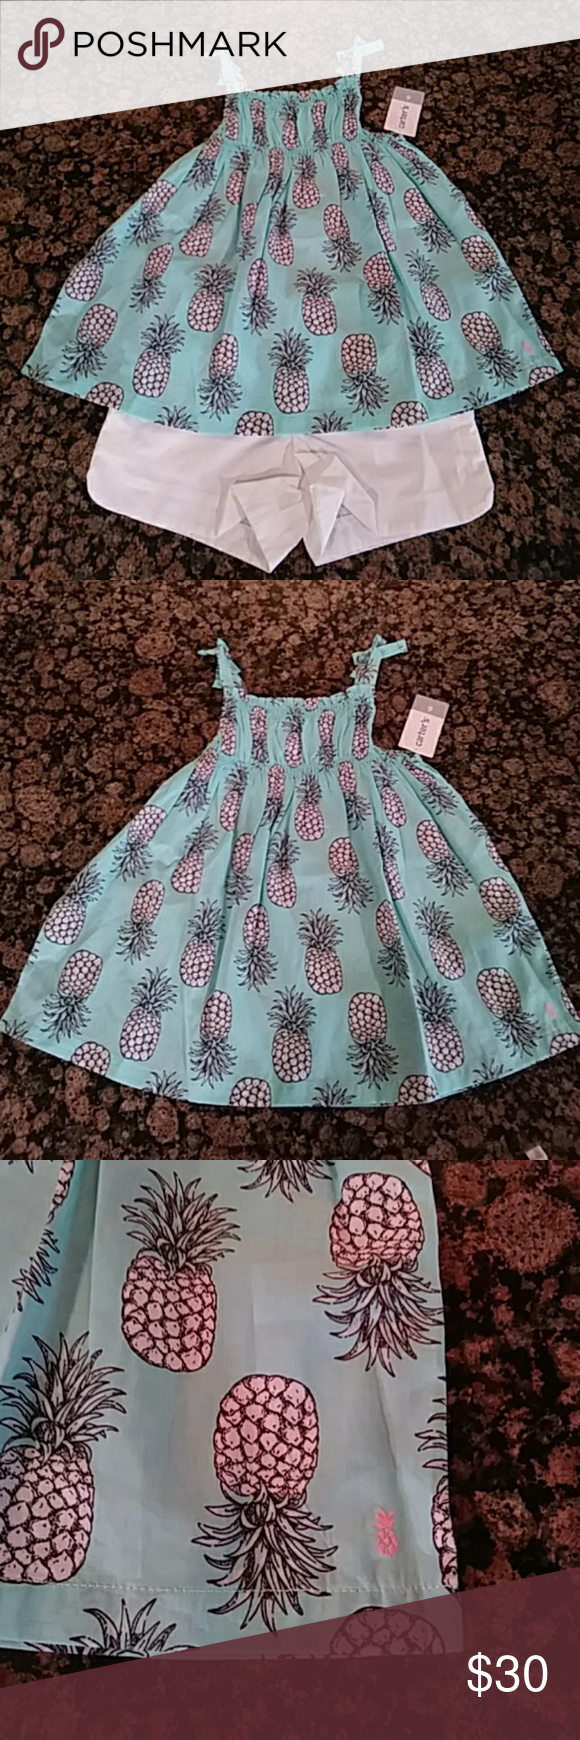 Pineapple Top & Shorts Set Pineapple smocked tank top and shorts set size - 6. Smocked pineapple print tank with white shorts that have a drawstring. Such a beautiful color and print! Carter's Matching Sets